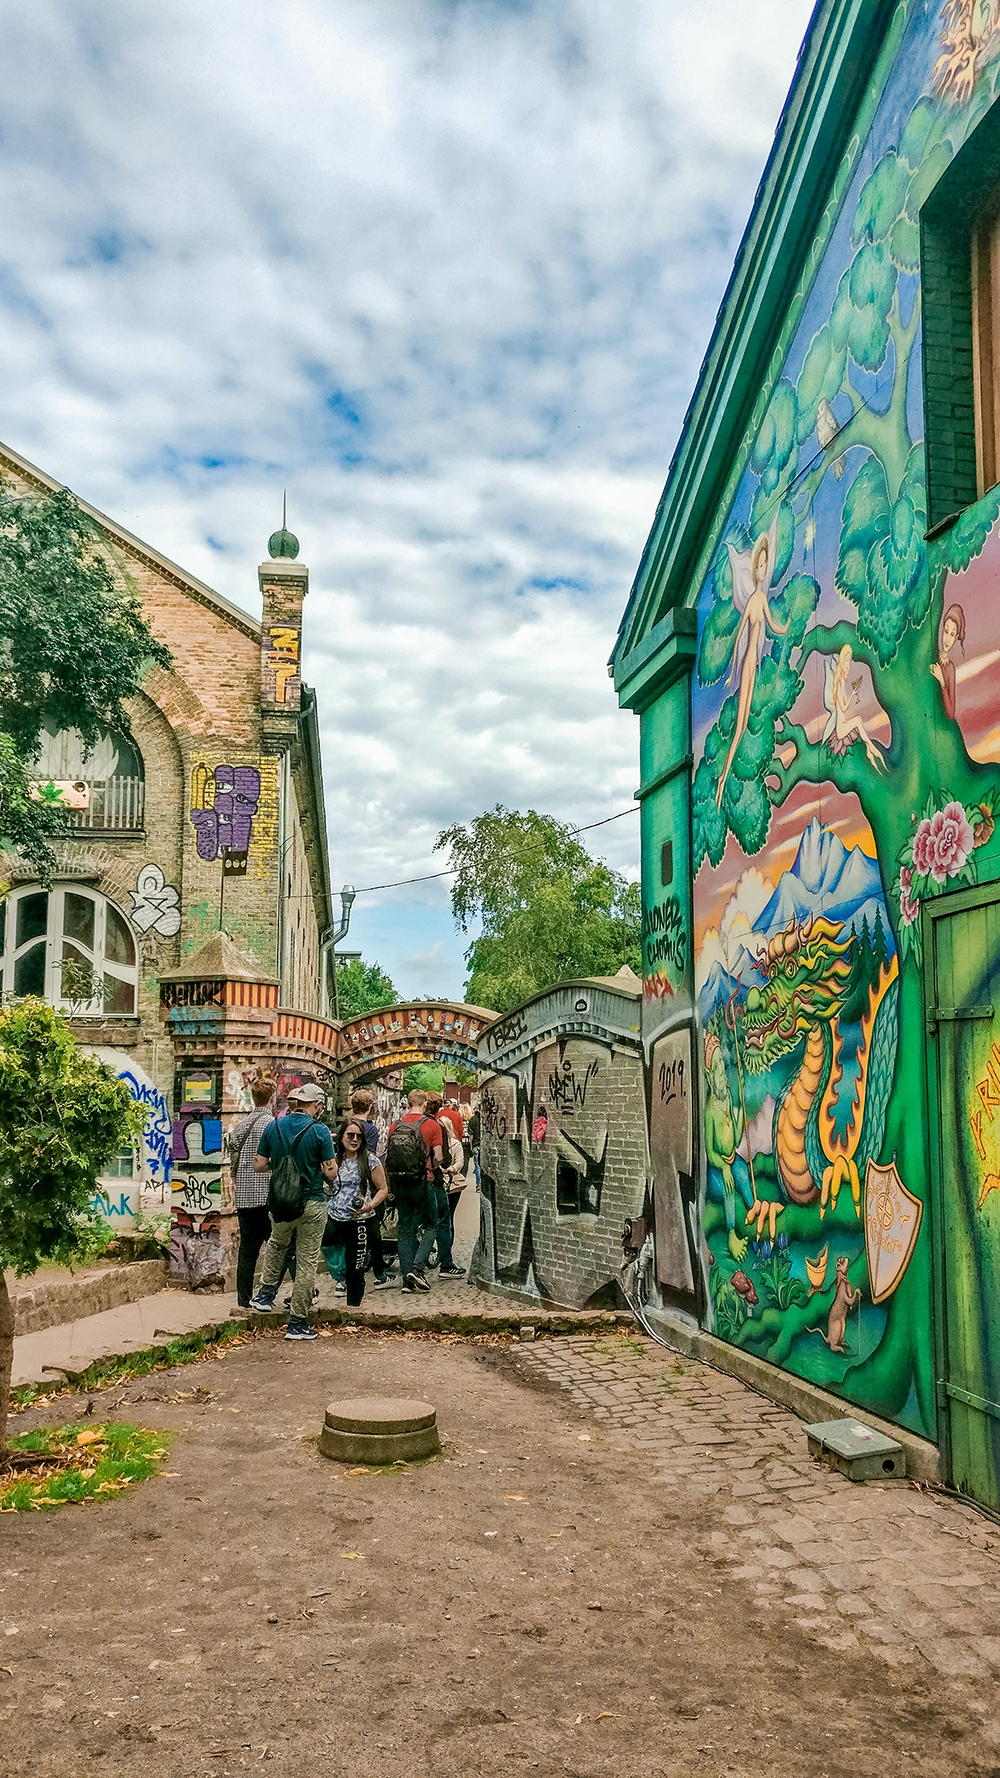 Freetown Christiania - Copenhagen 3-day travel itinerary | Aliz's Wonderland